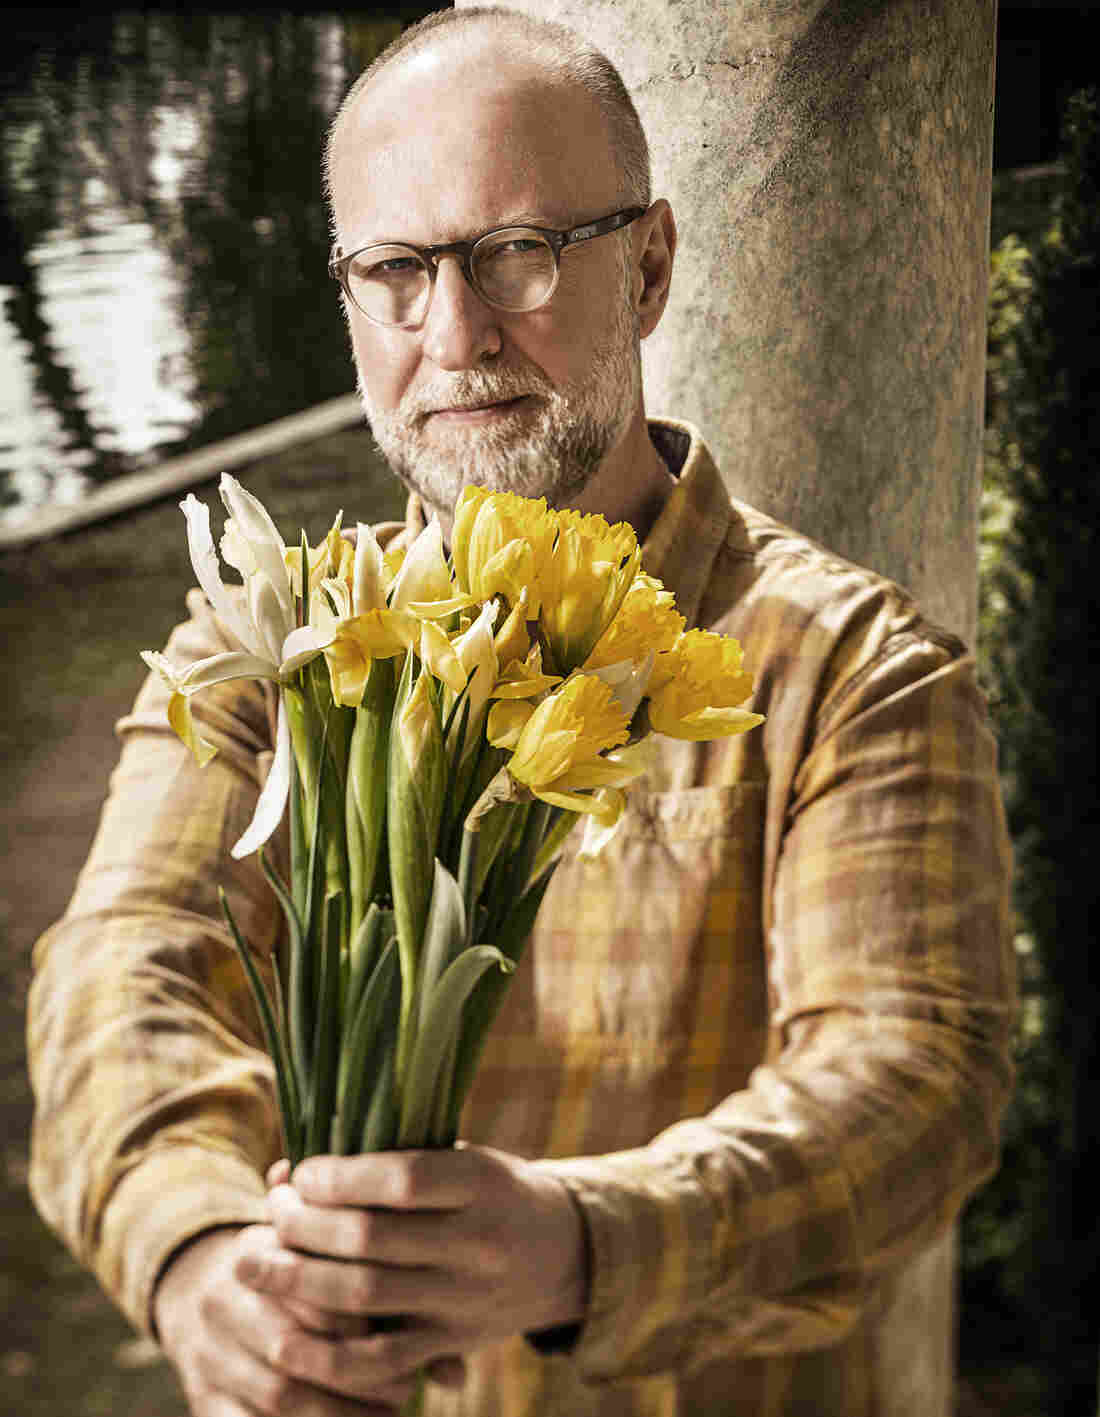 Bob Mould's latest album is Beauty & Ruin.